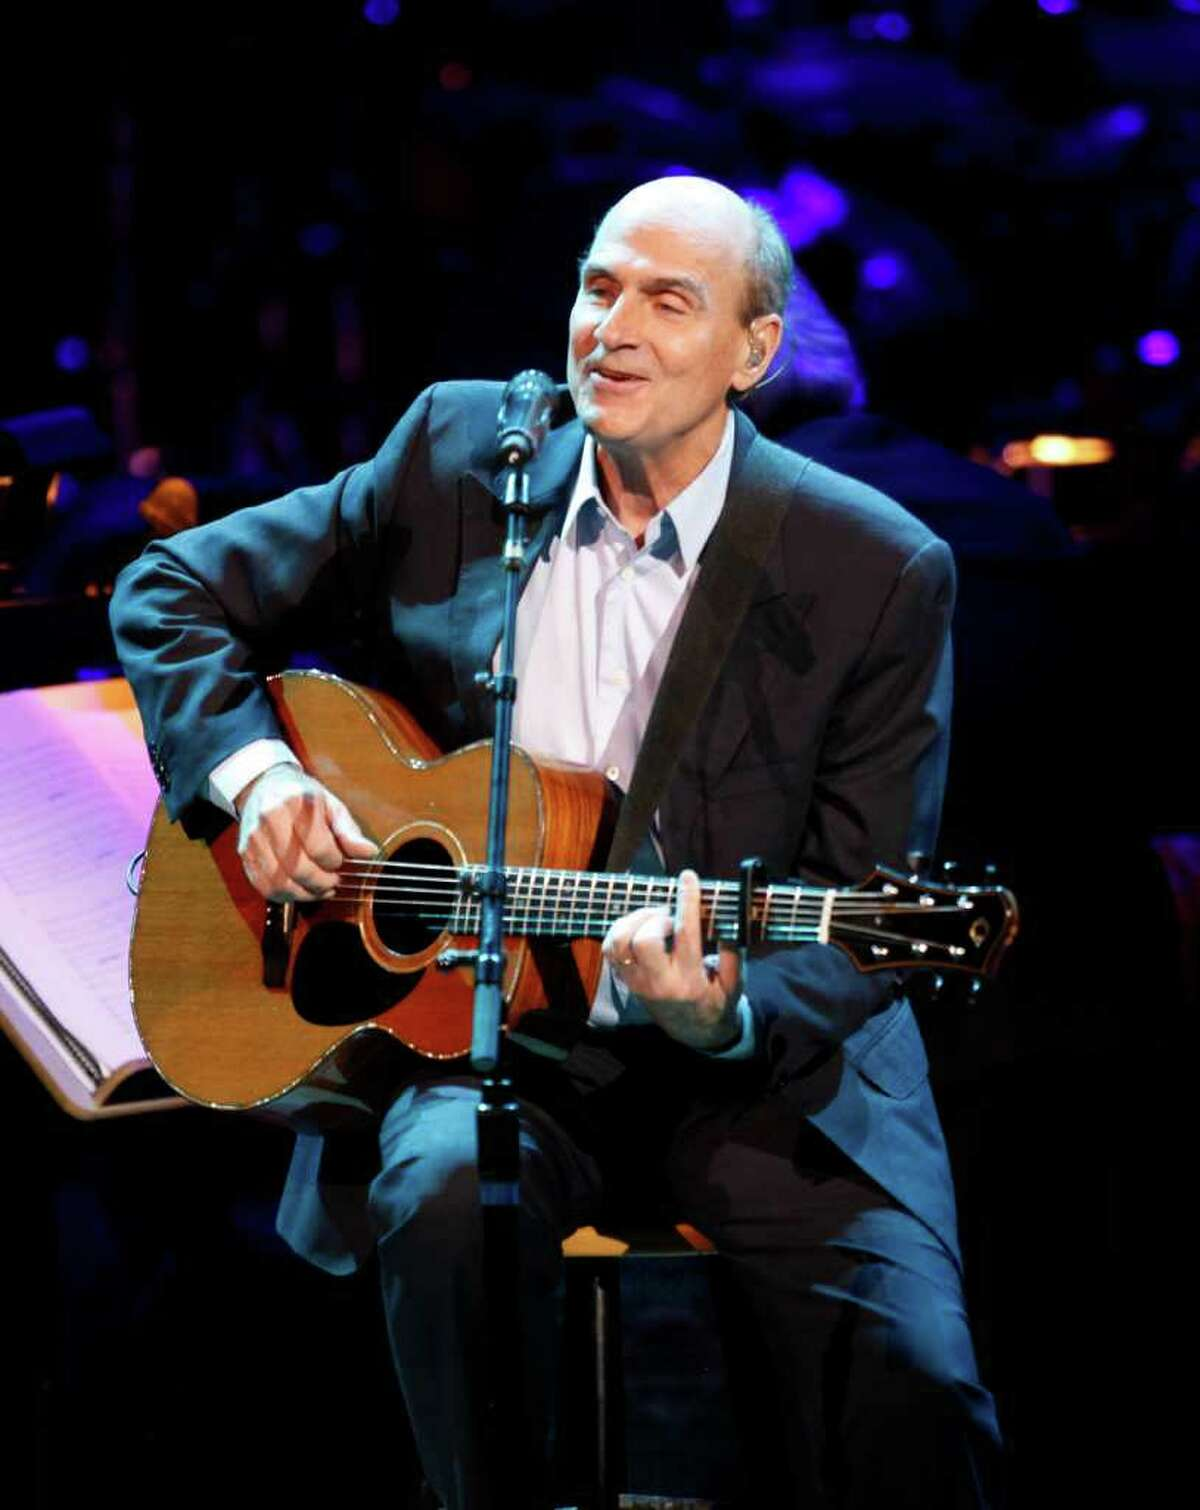 James Tayor performs during the Revlon Concert for the Rainforest Fund at Carnegie Hall, Tuesday, April 3, 2012 in New York.